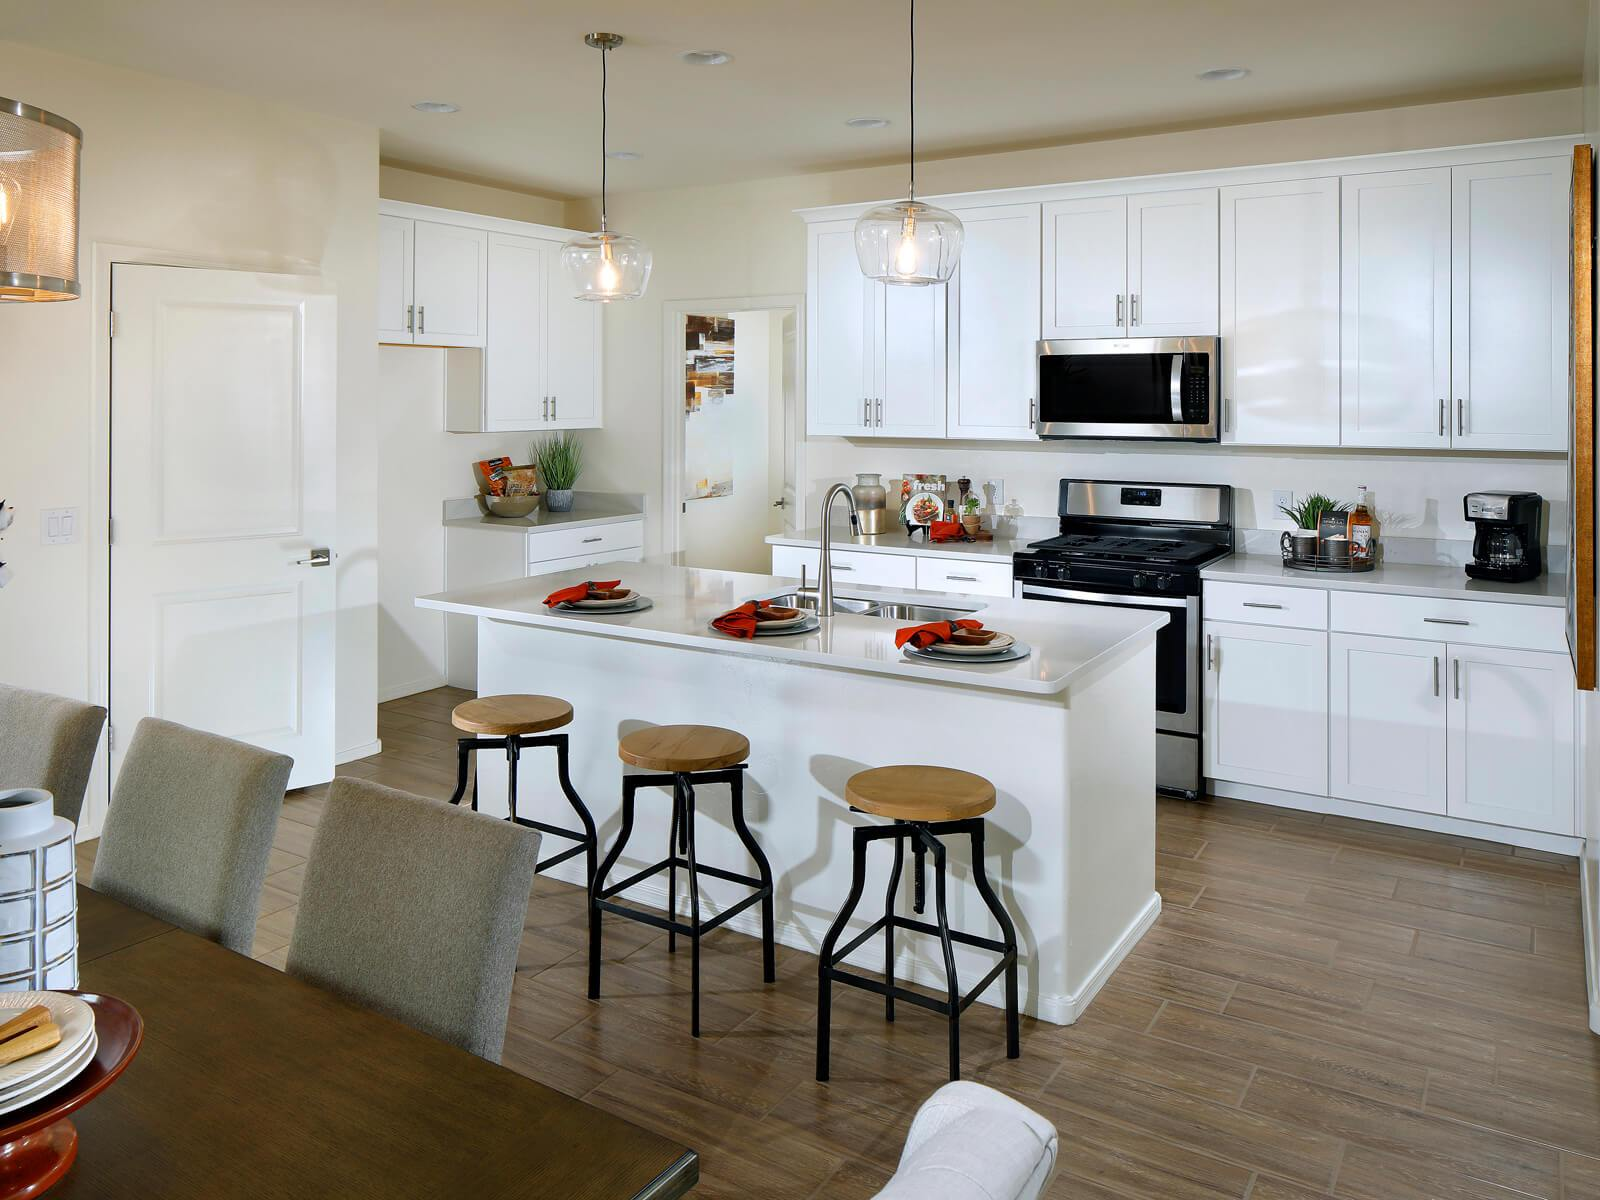 Kitchen featured in the Mascota By Meritage Homes in Tucson, AZ